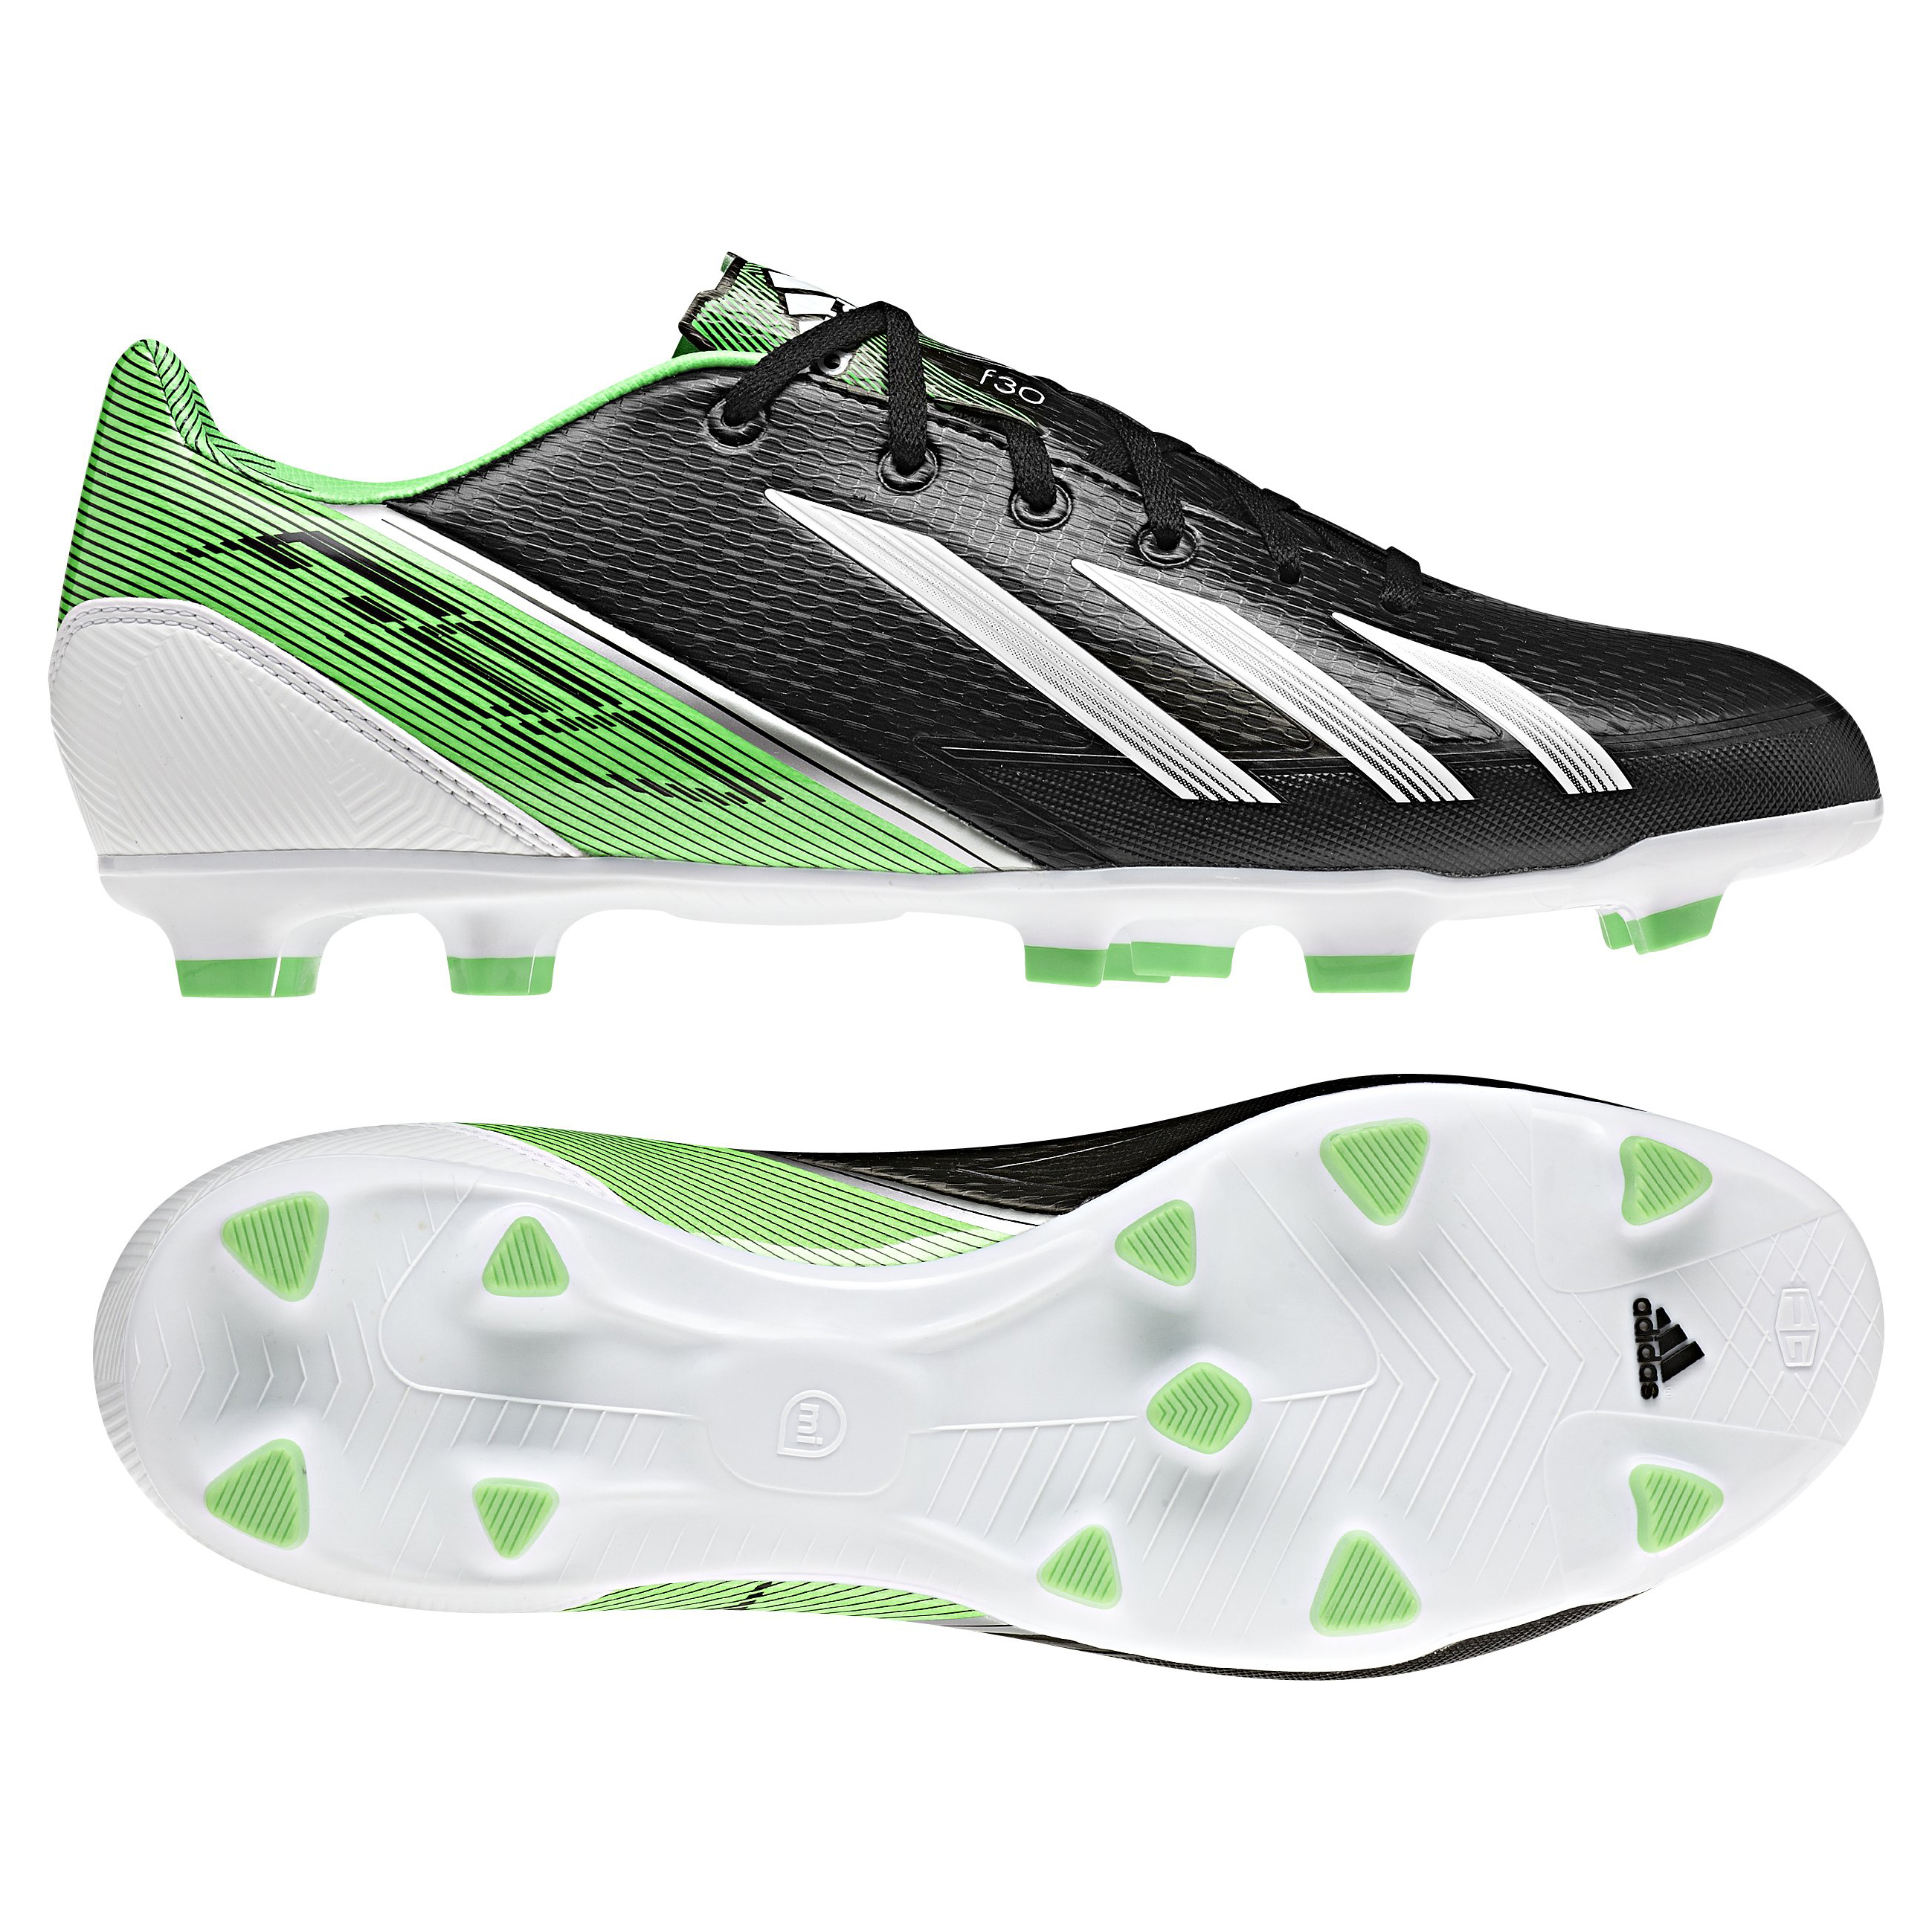 adidas AdiZero F30 TRX Firm Ground Football Boots - Black/Running White/Green Zest